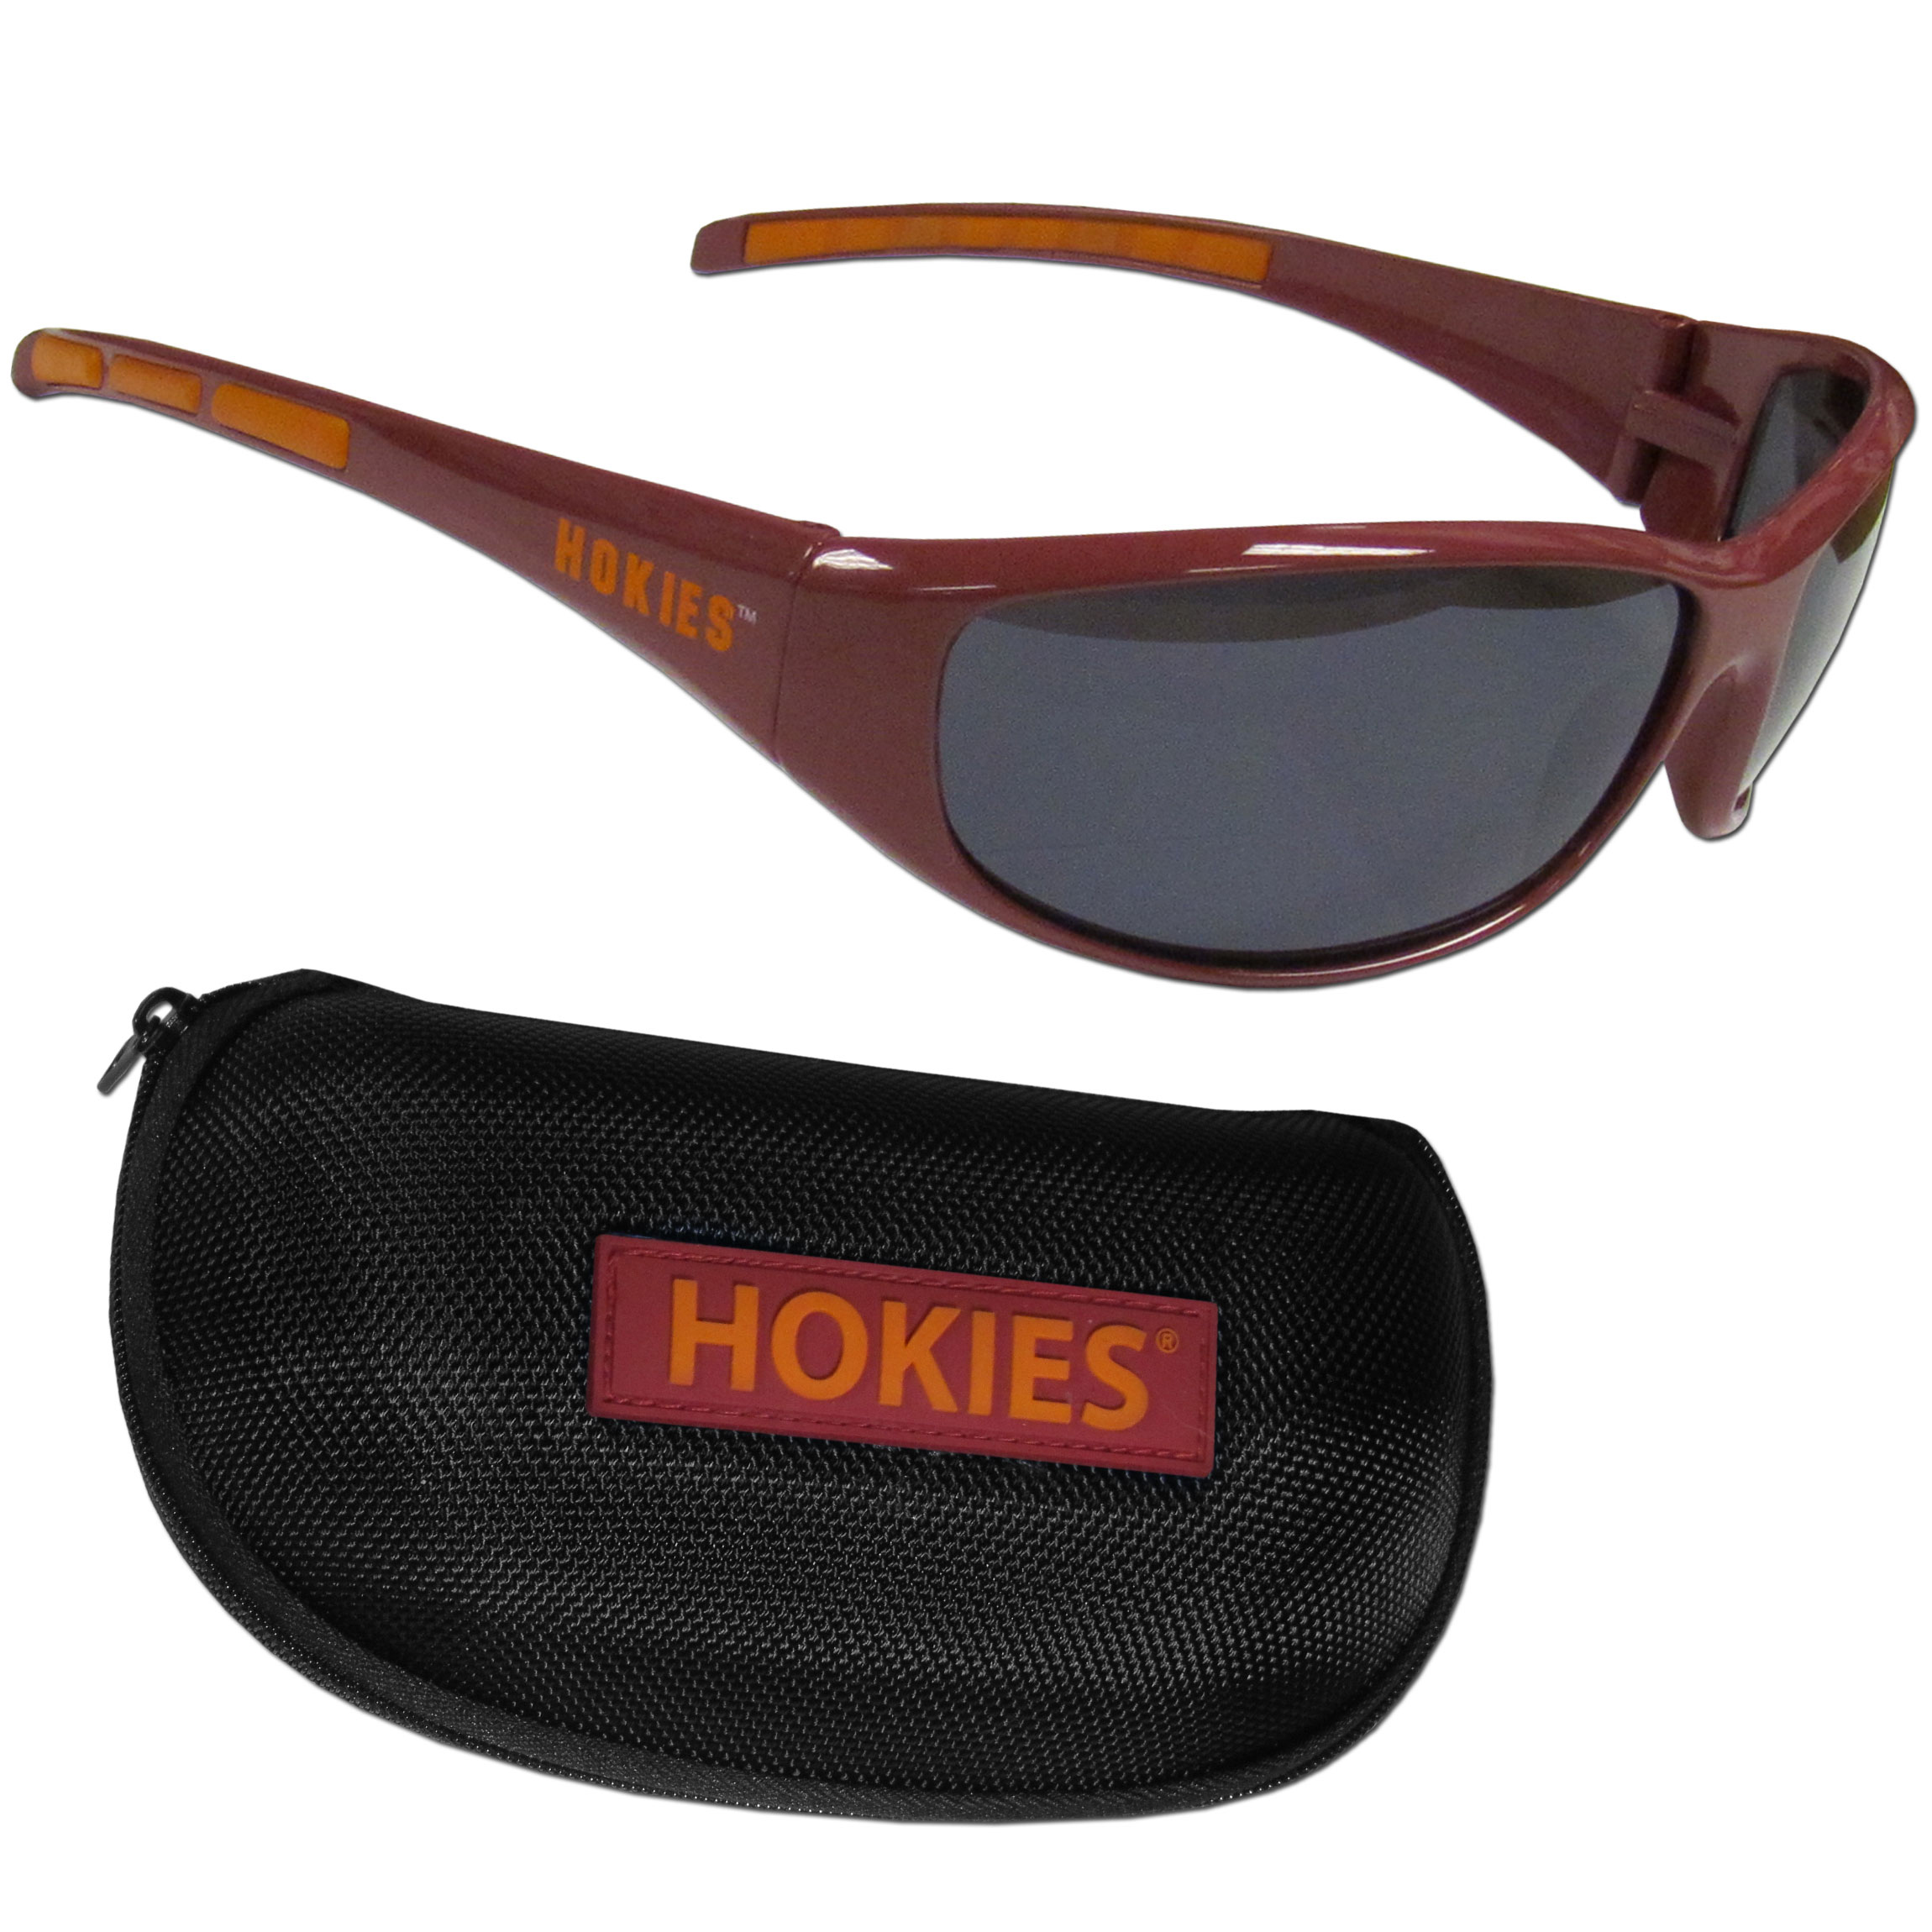 Virginia Tech Hokies Wrap Sunglass and Case Set - This great set includes a high quality pair of Virginia Tech Hokies wrap sunglasses and hard carrying case.